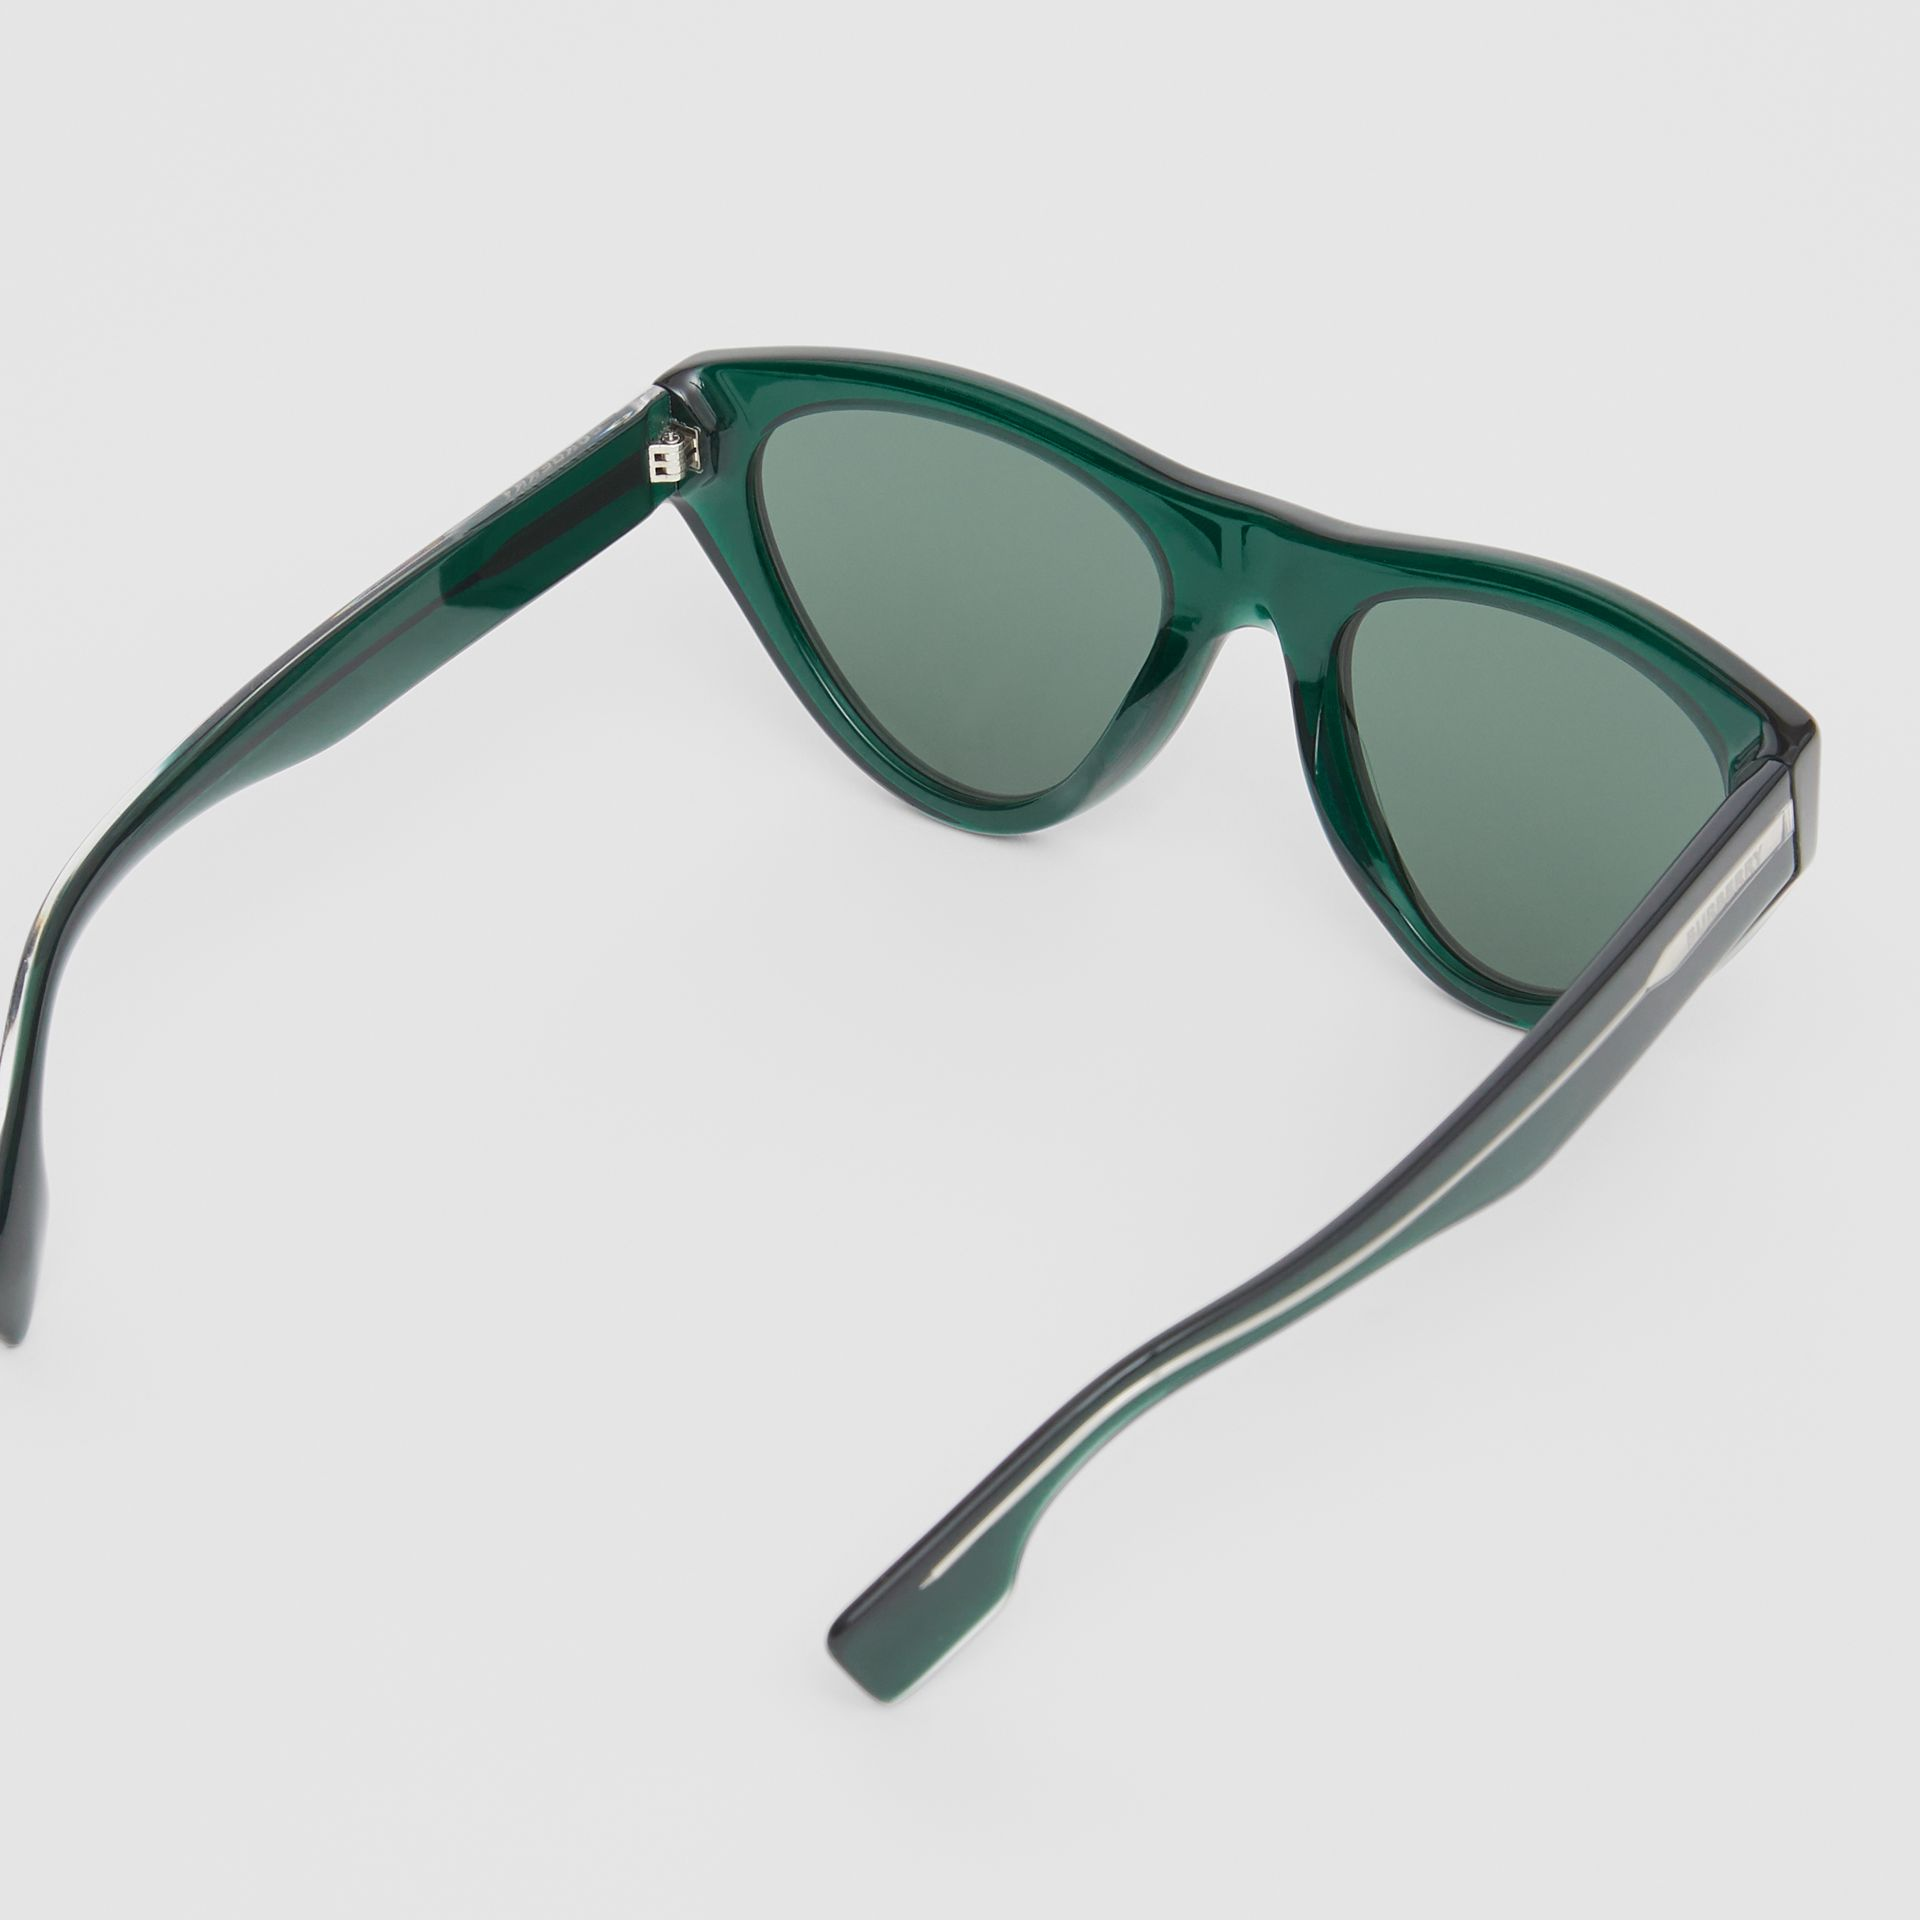 Triangular Frame Sunglasses in Green - Women | Burberry Canada - gallery image 4